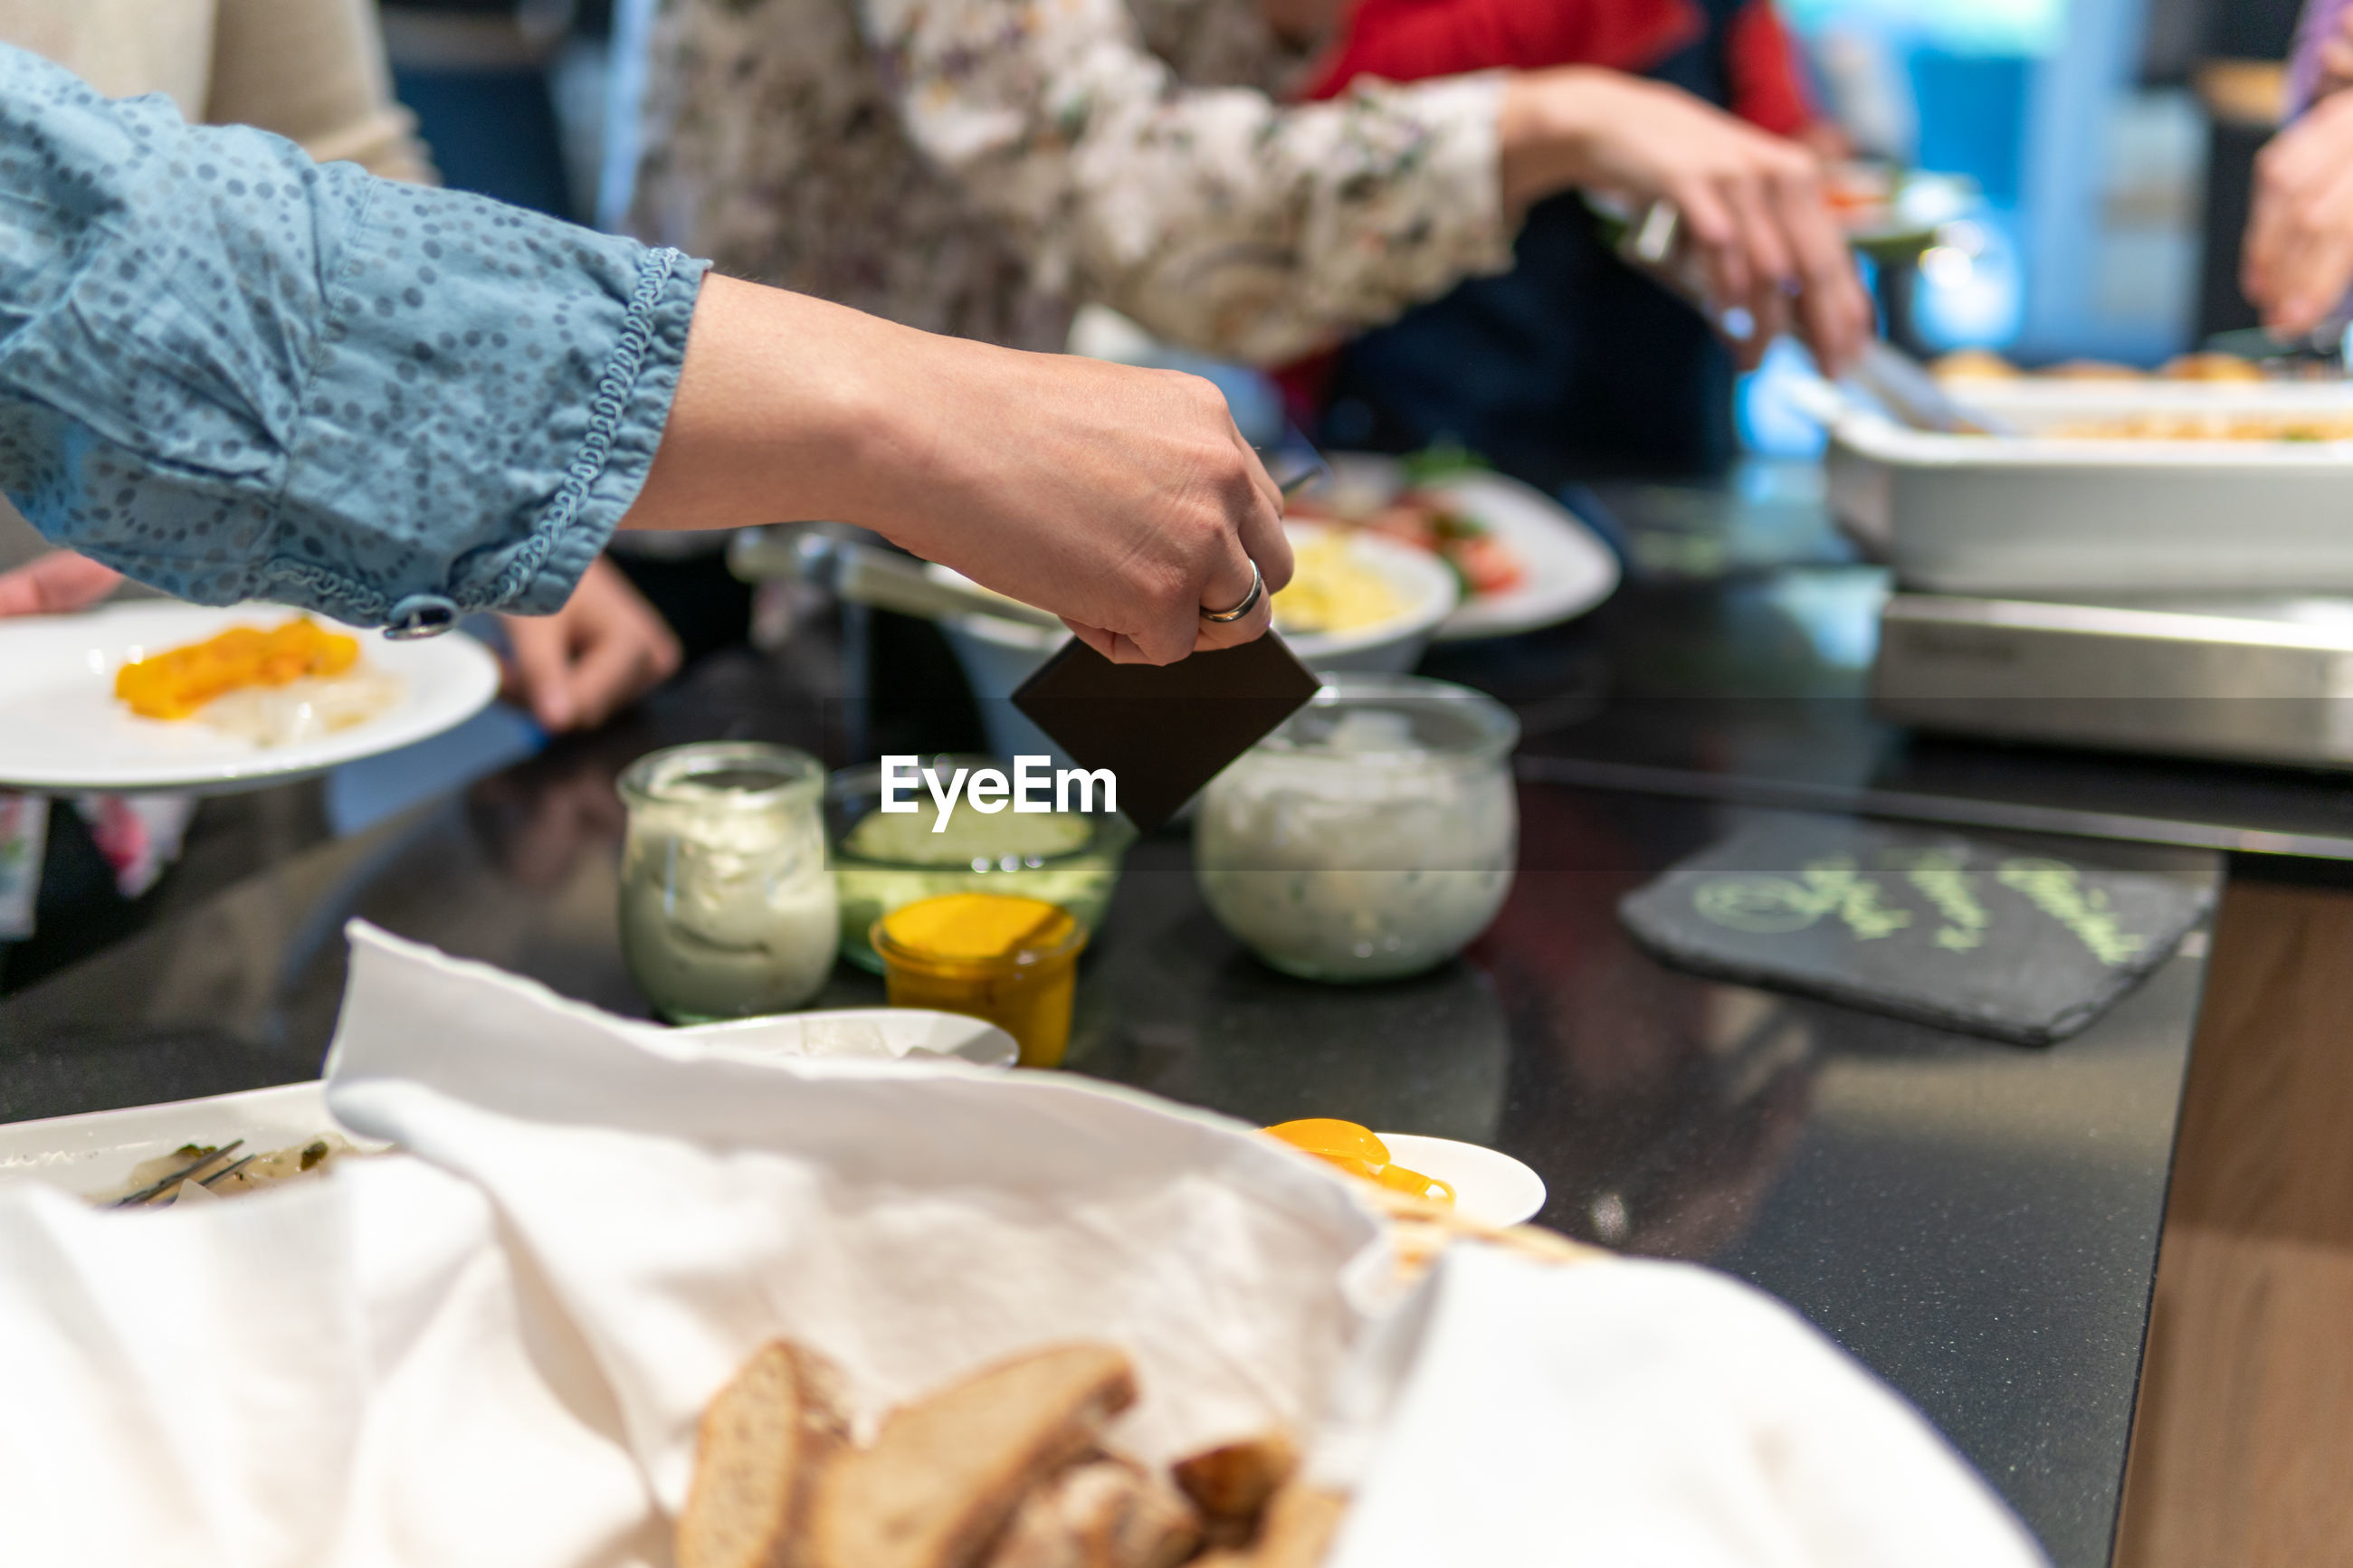 MIDSECTION OF WOMAN HOLDING FOOD AT TABLE IN KITCHEN